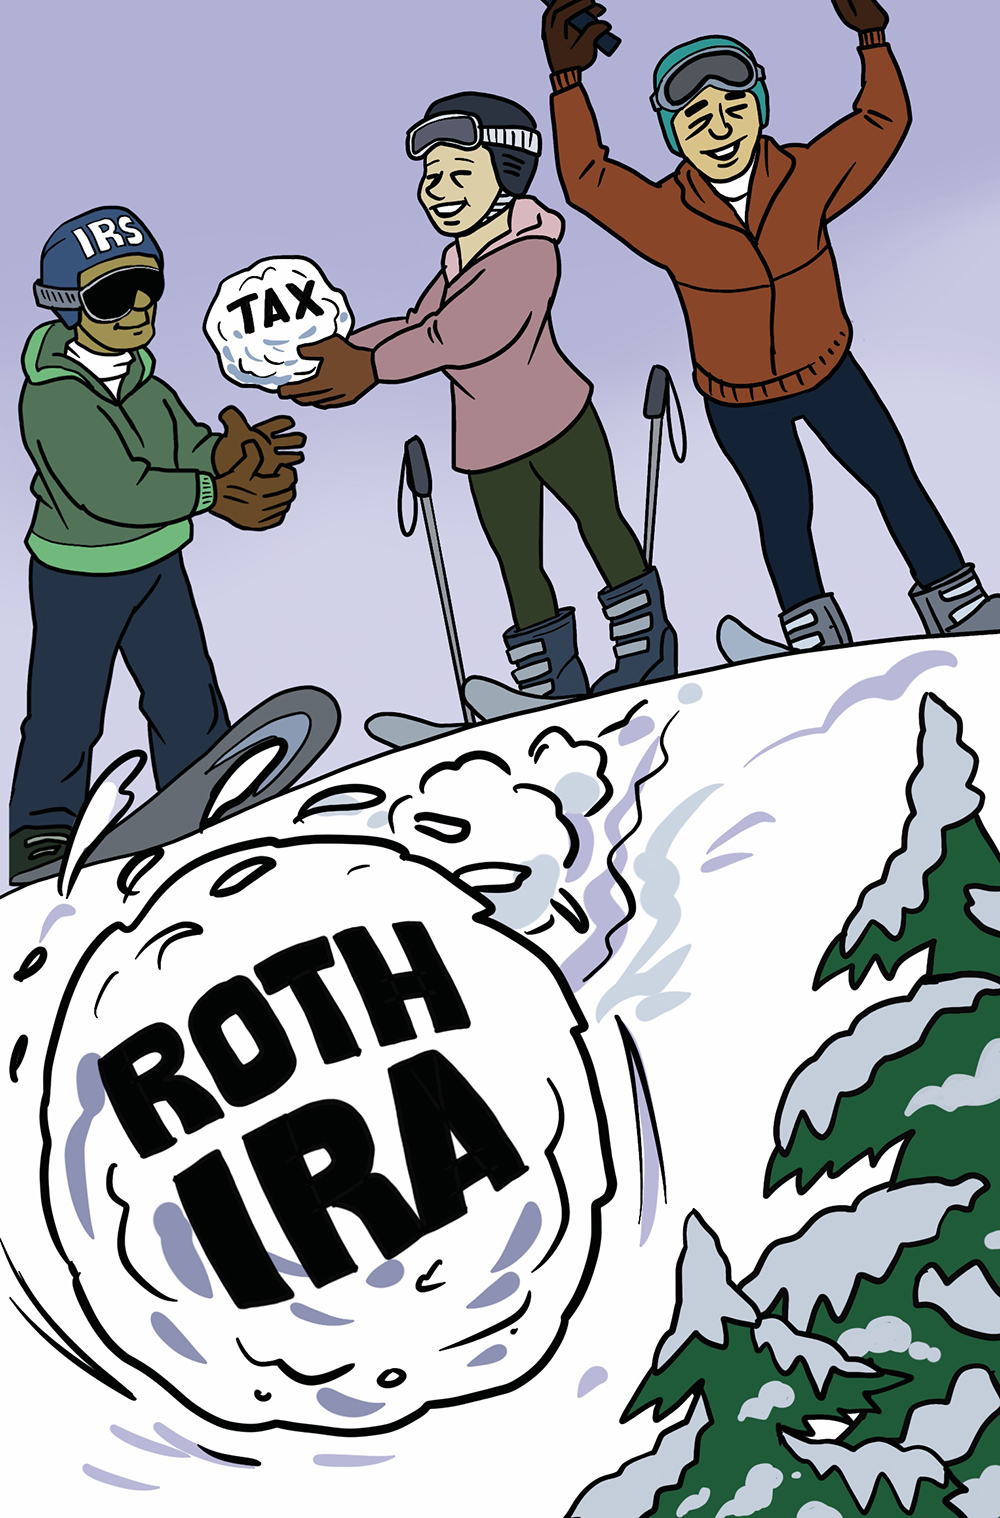 Trending Now Roth IRA Rollovers